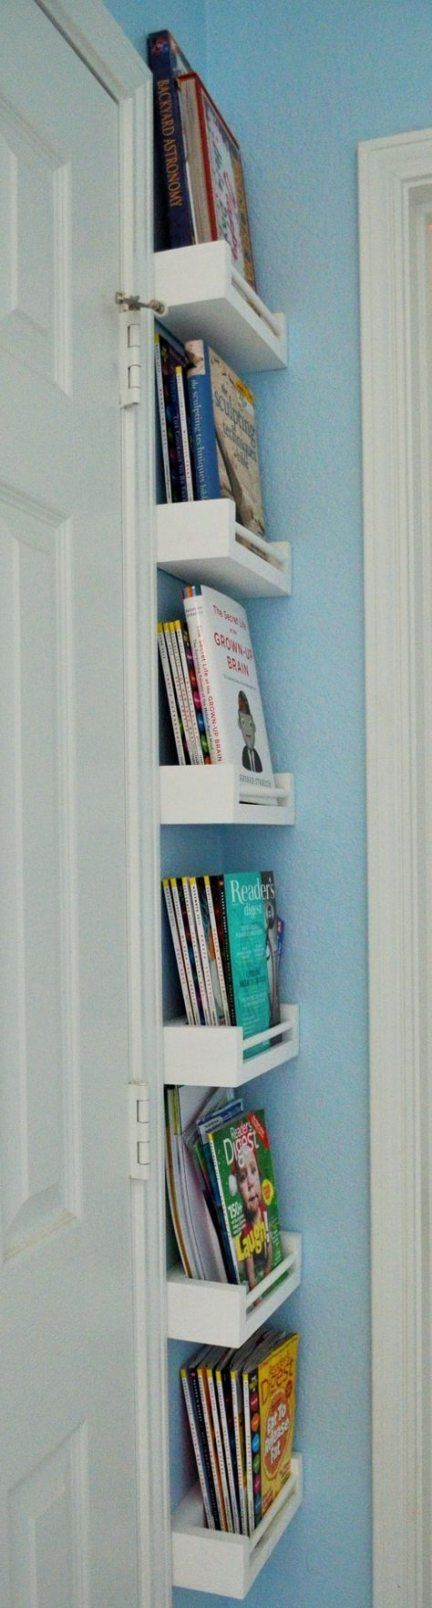 Most Current Images Best Diy Kids Bookshelf Space Saving Book Storage 57 Ideas Book Bookshelf Cu In 2020 Bookshelves Diy Kids Rooms Diy Bedroom Organization Diy